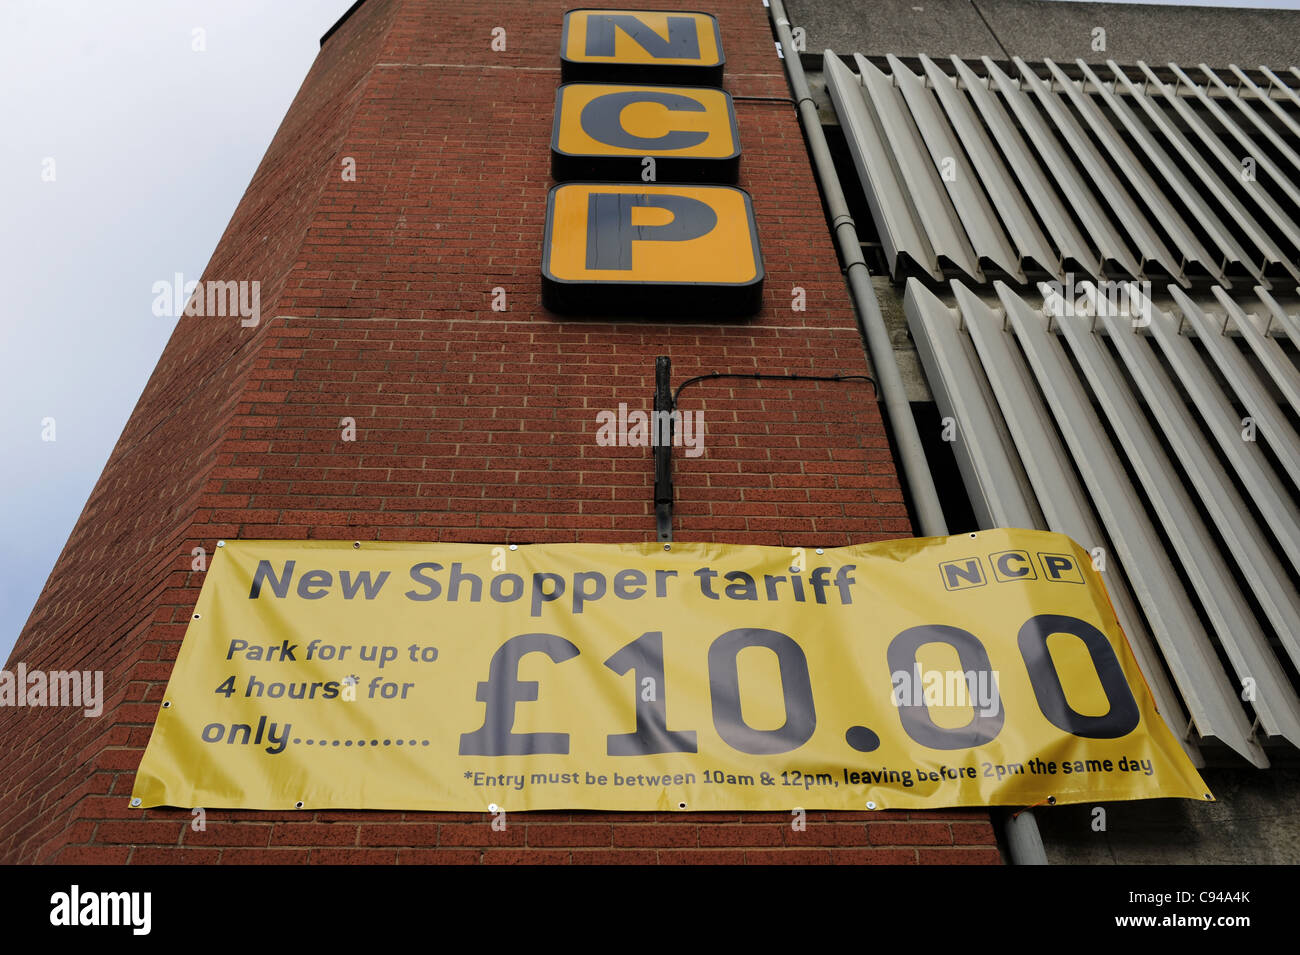 Bargain price for shoppers parking at this city centre car park in Brighton NCP - Stock Image